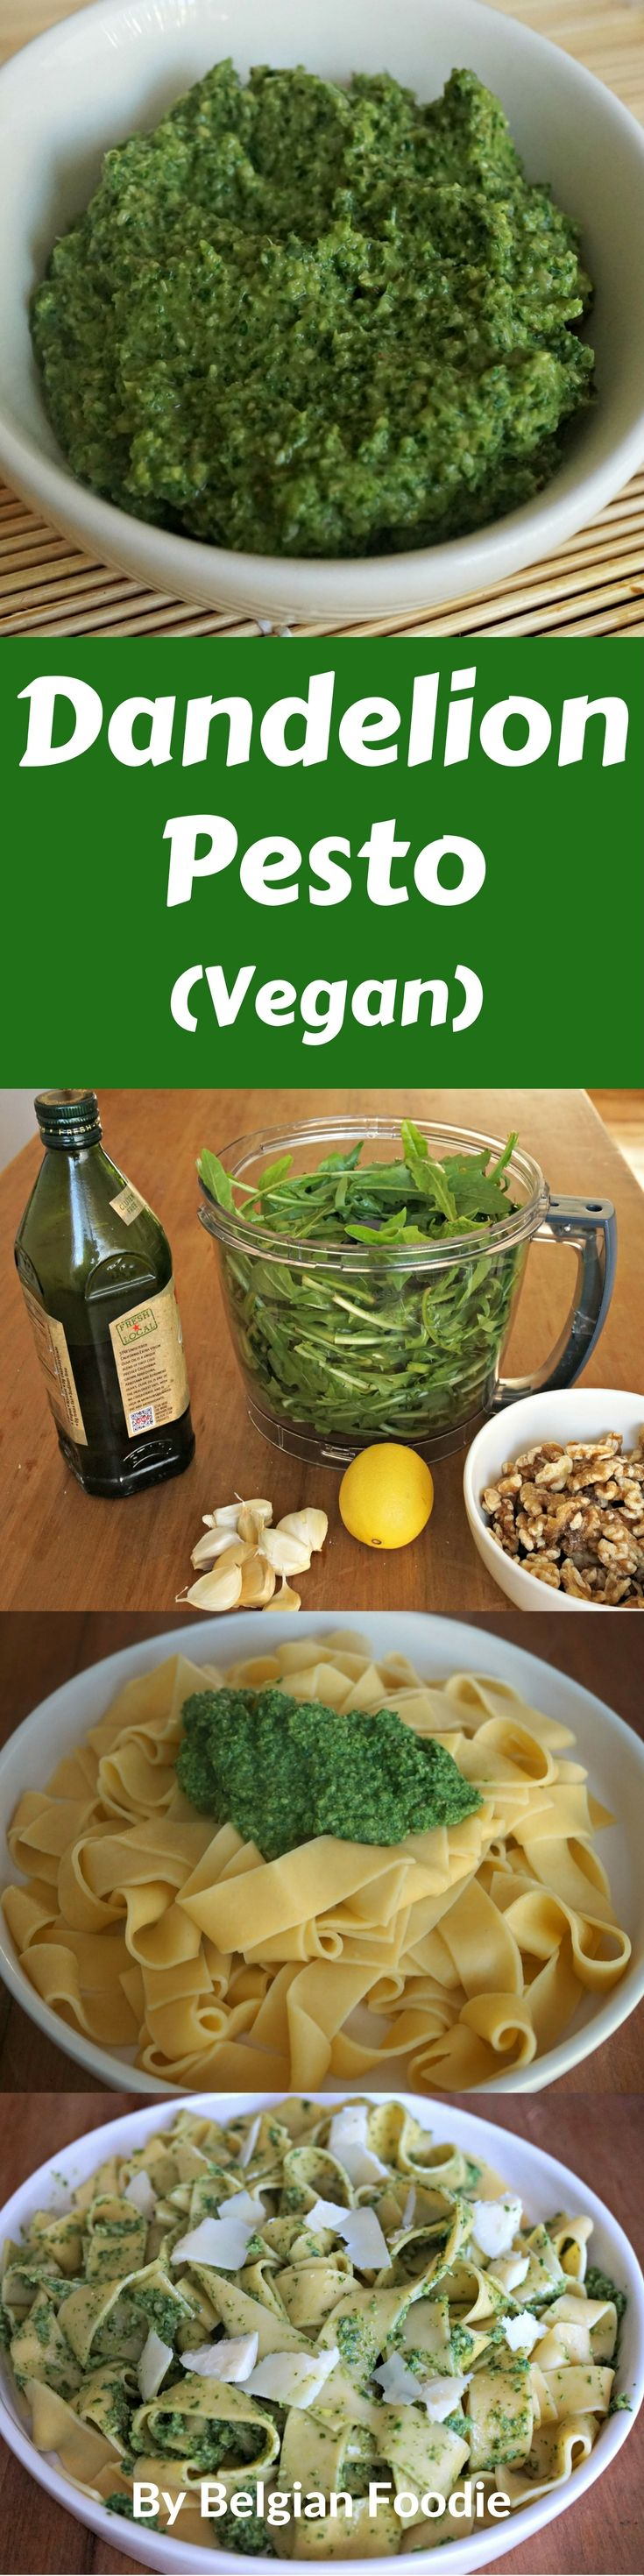 Homemade Dandelion Pesto (VEGAN) that is easy to make, healthy and very tasty!